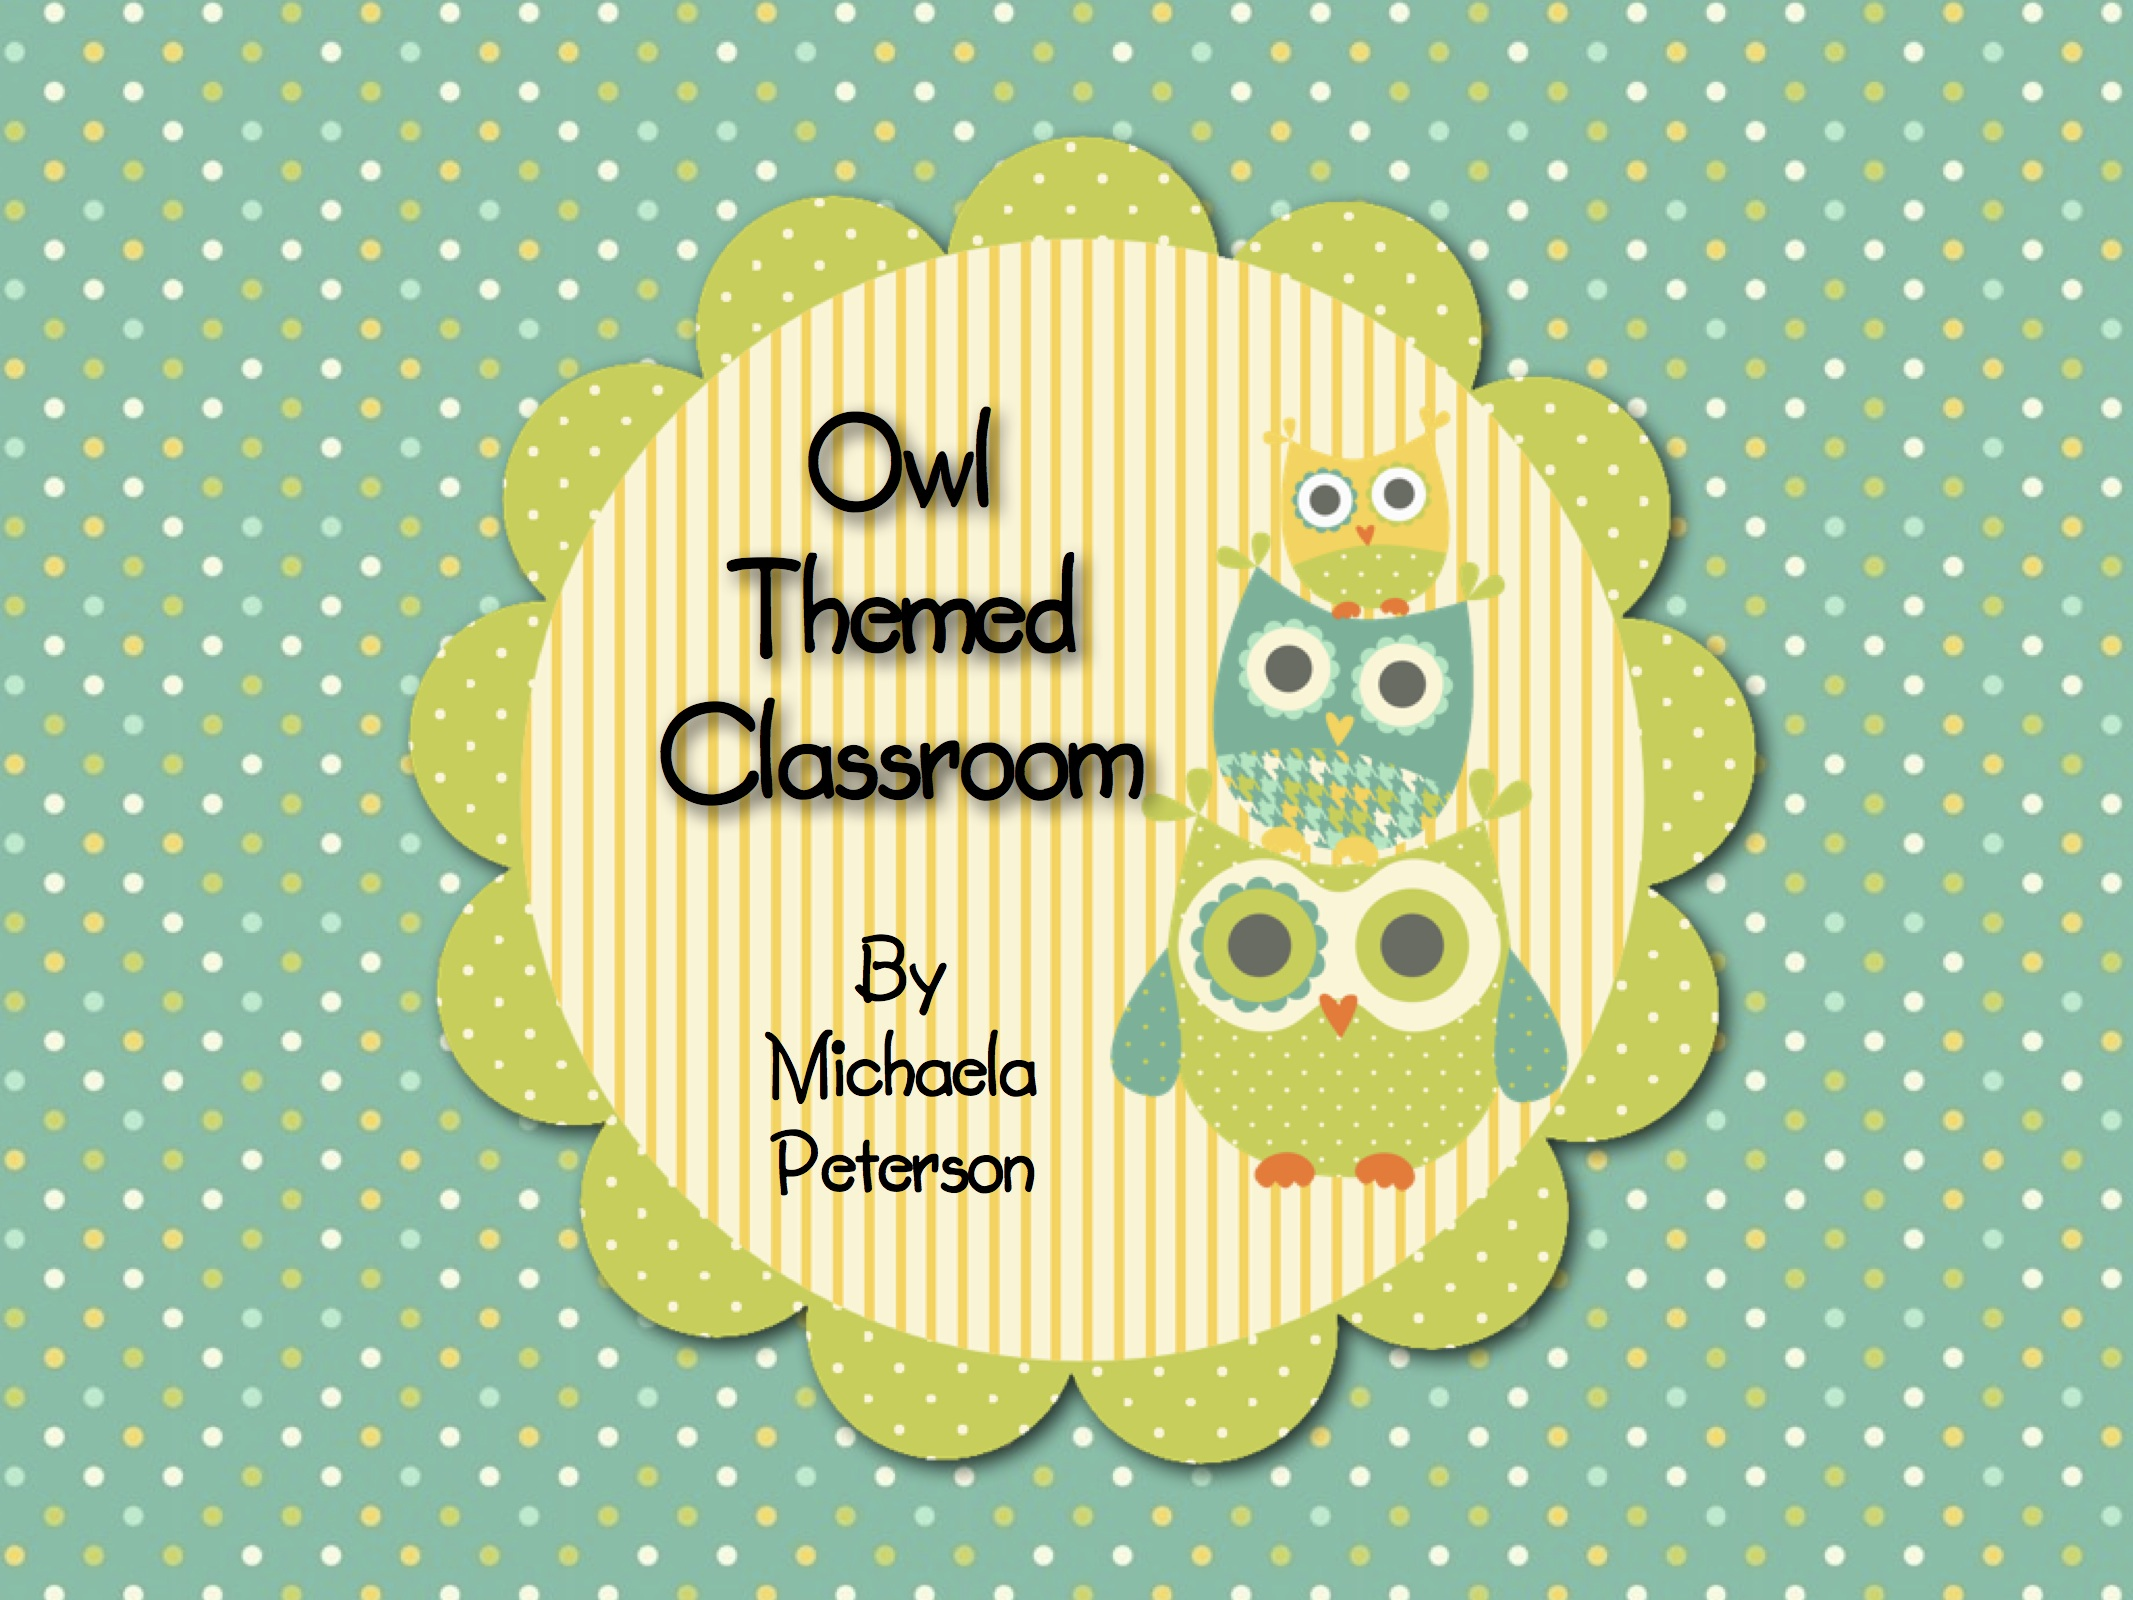 Owl Theme Classroom preview